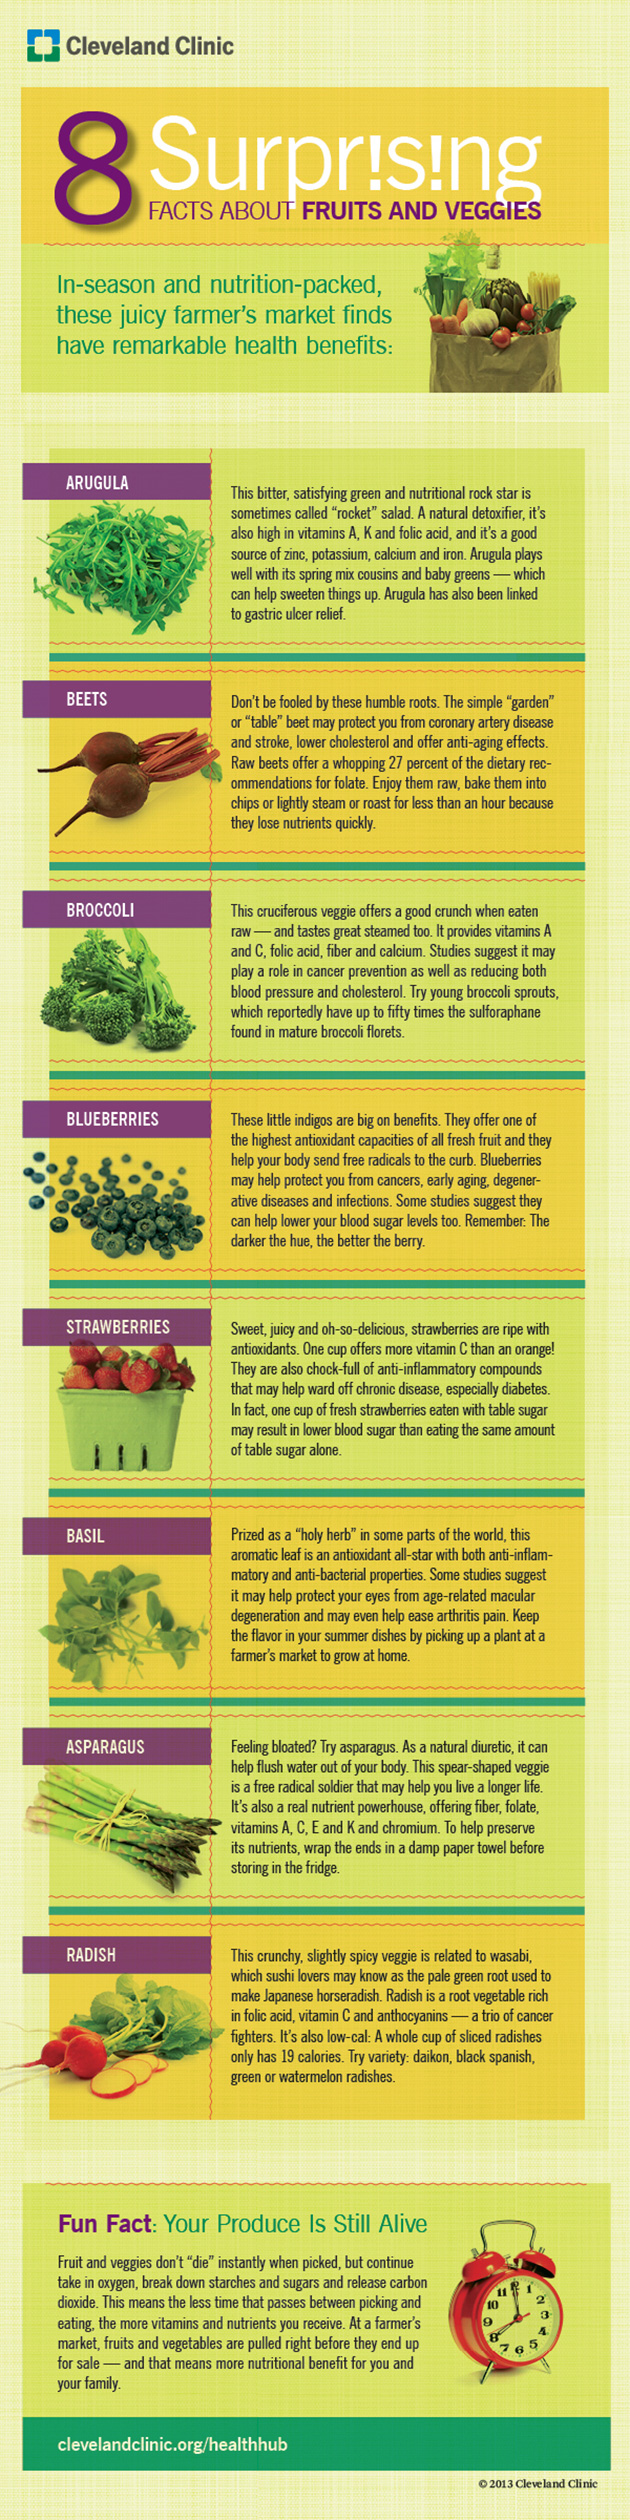 8 True Facts About Fruits And Veggies Infographic